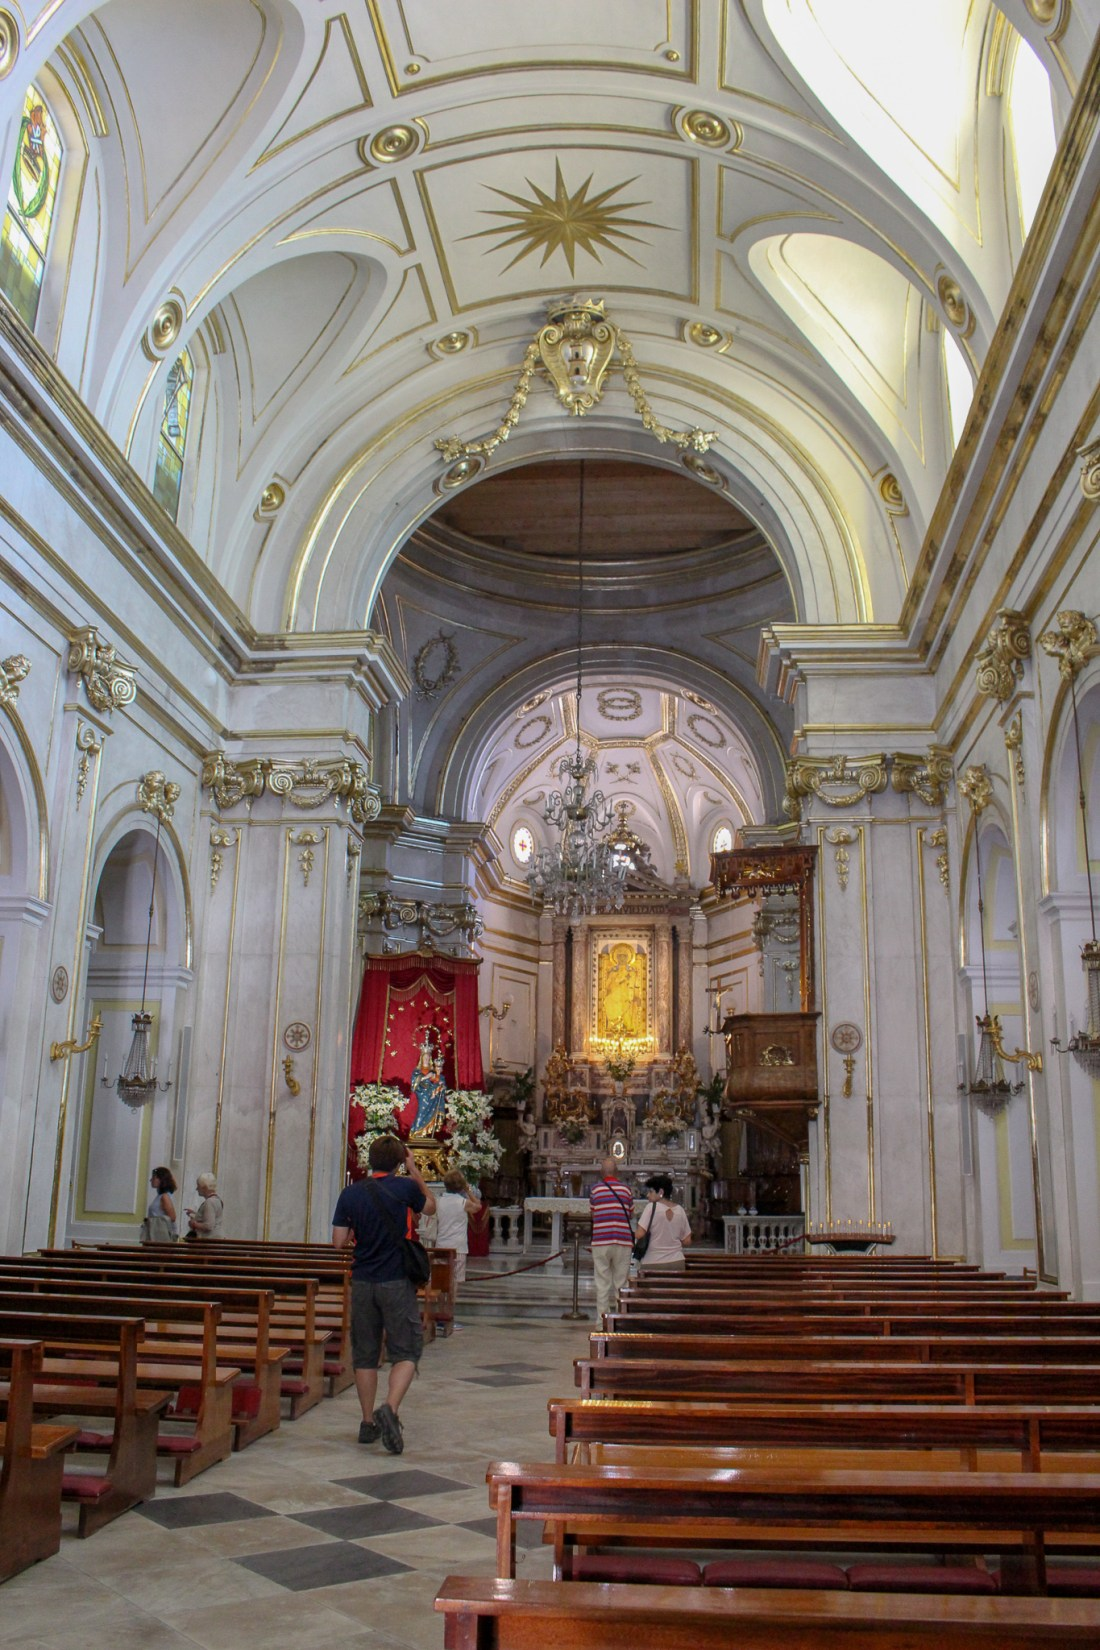 Inside of a church in Positano, Italy